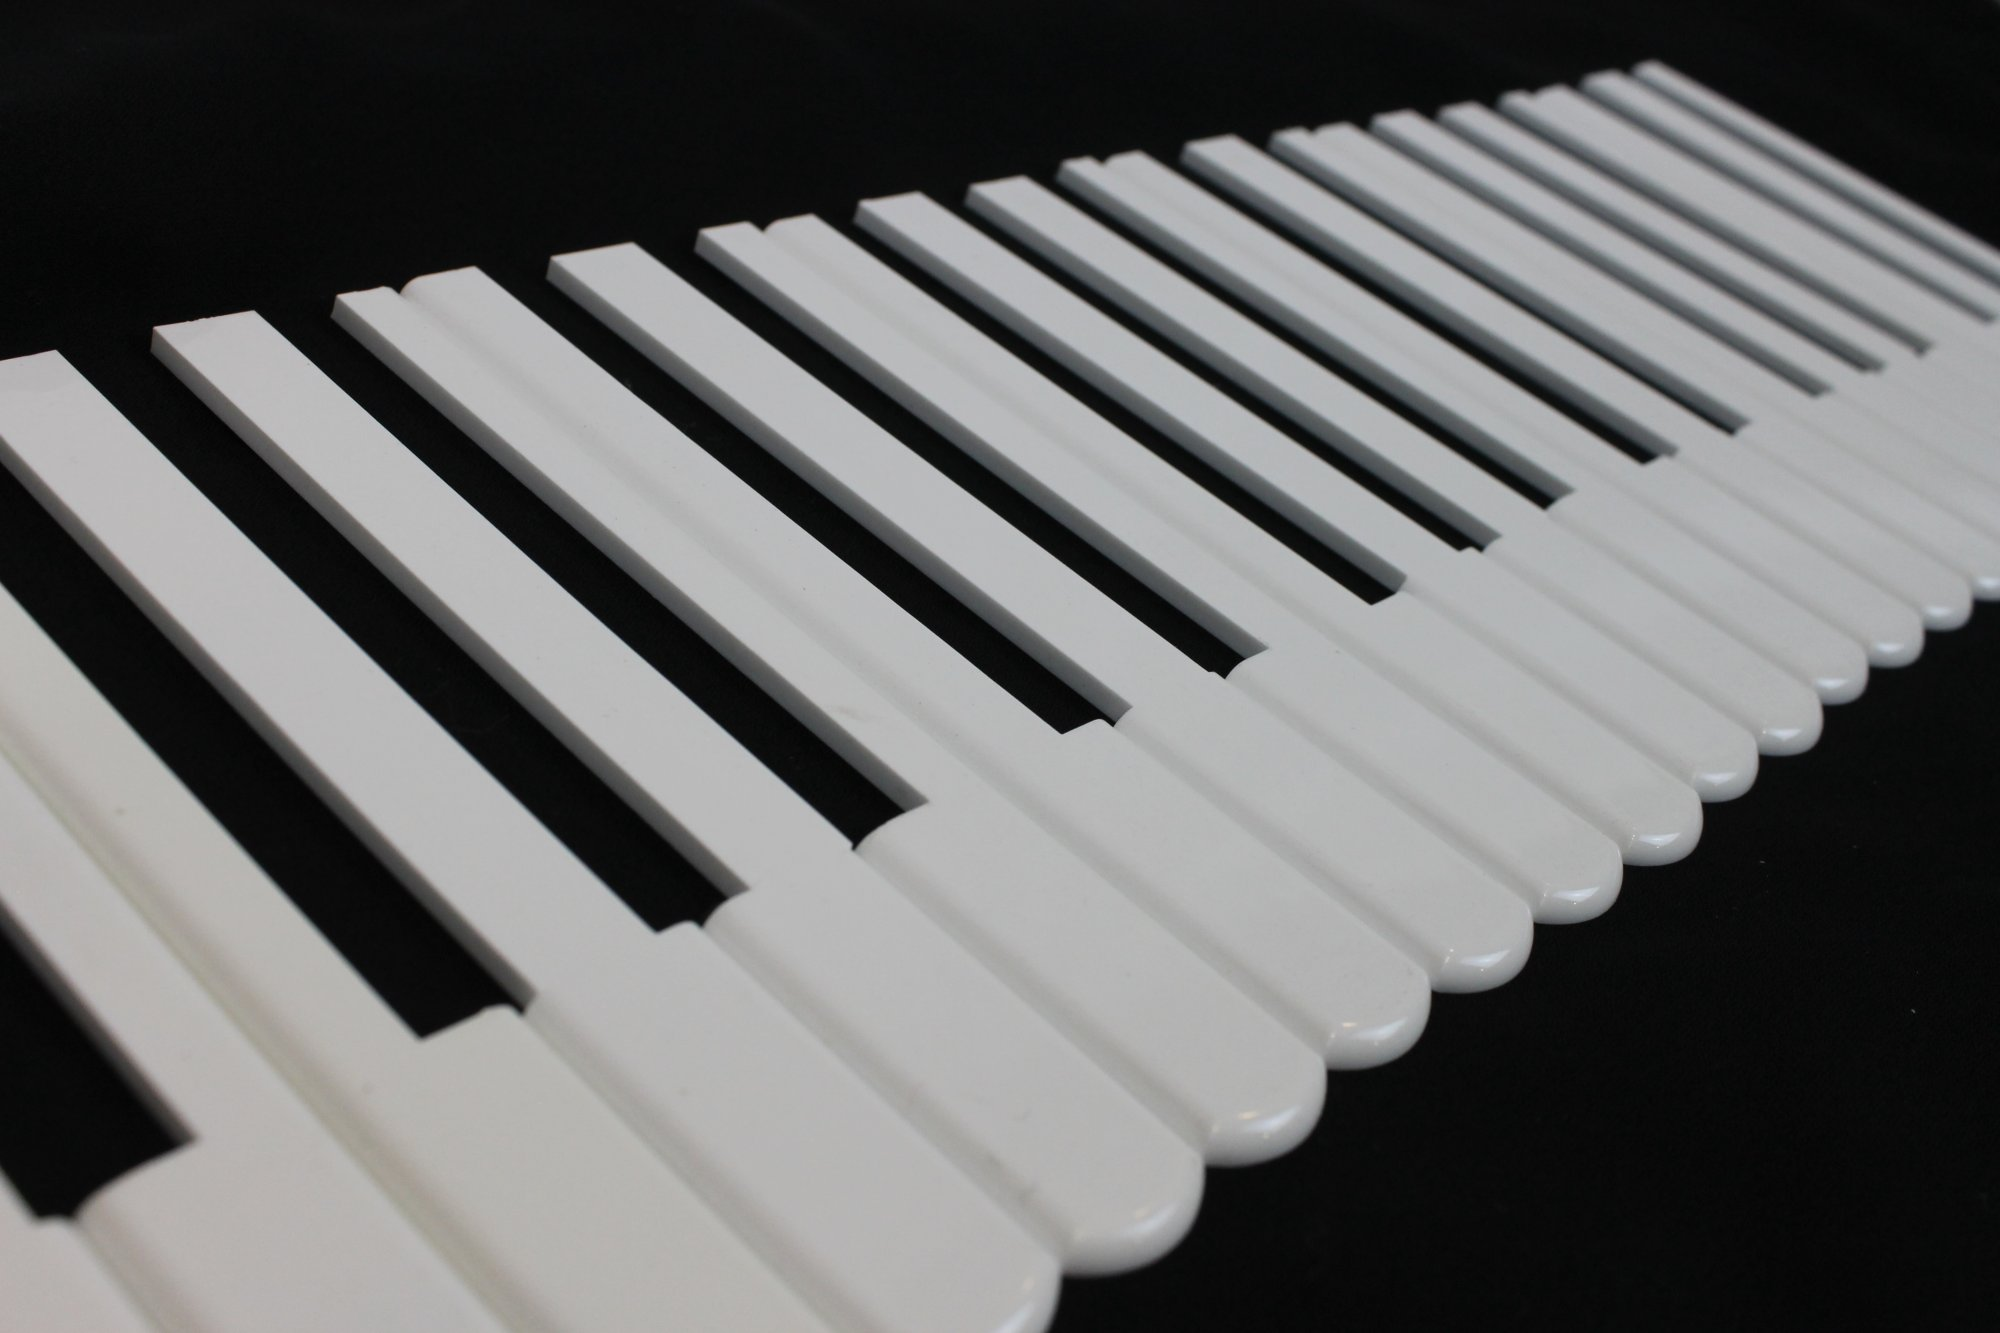 Piano Accordion Part - Set of 24 Pre-Cut White Key Tops 20.5mm Width